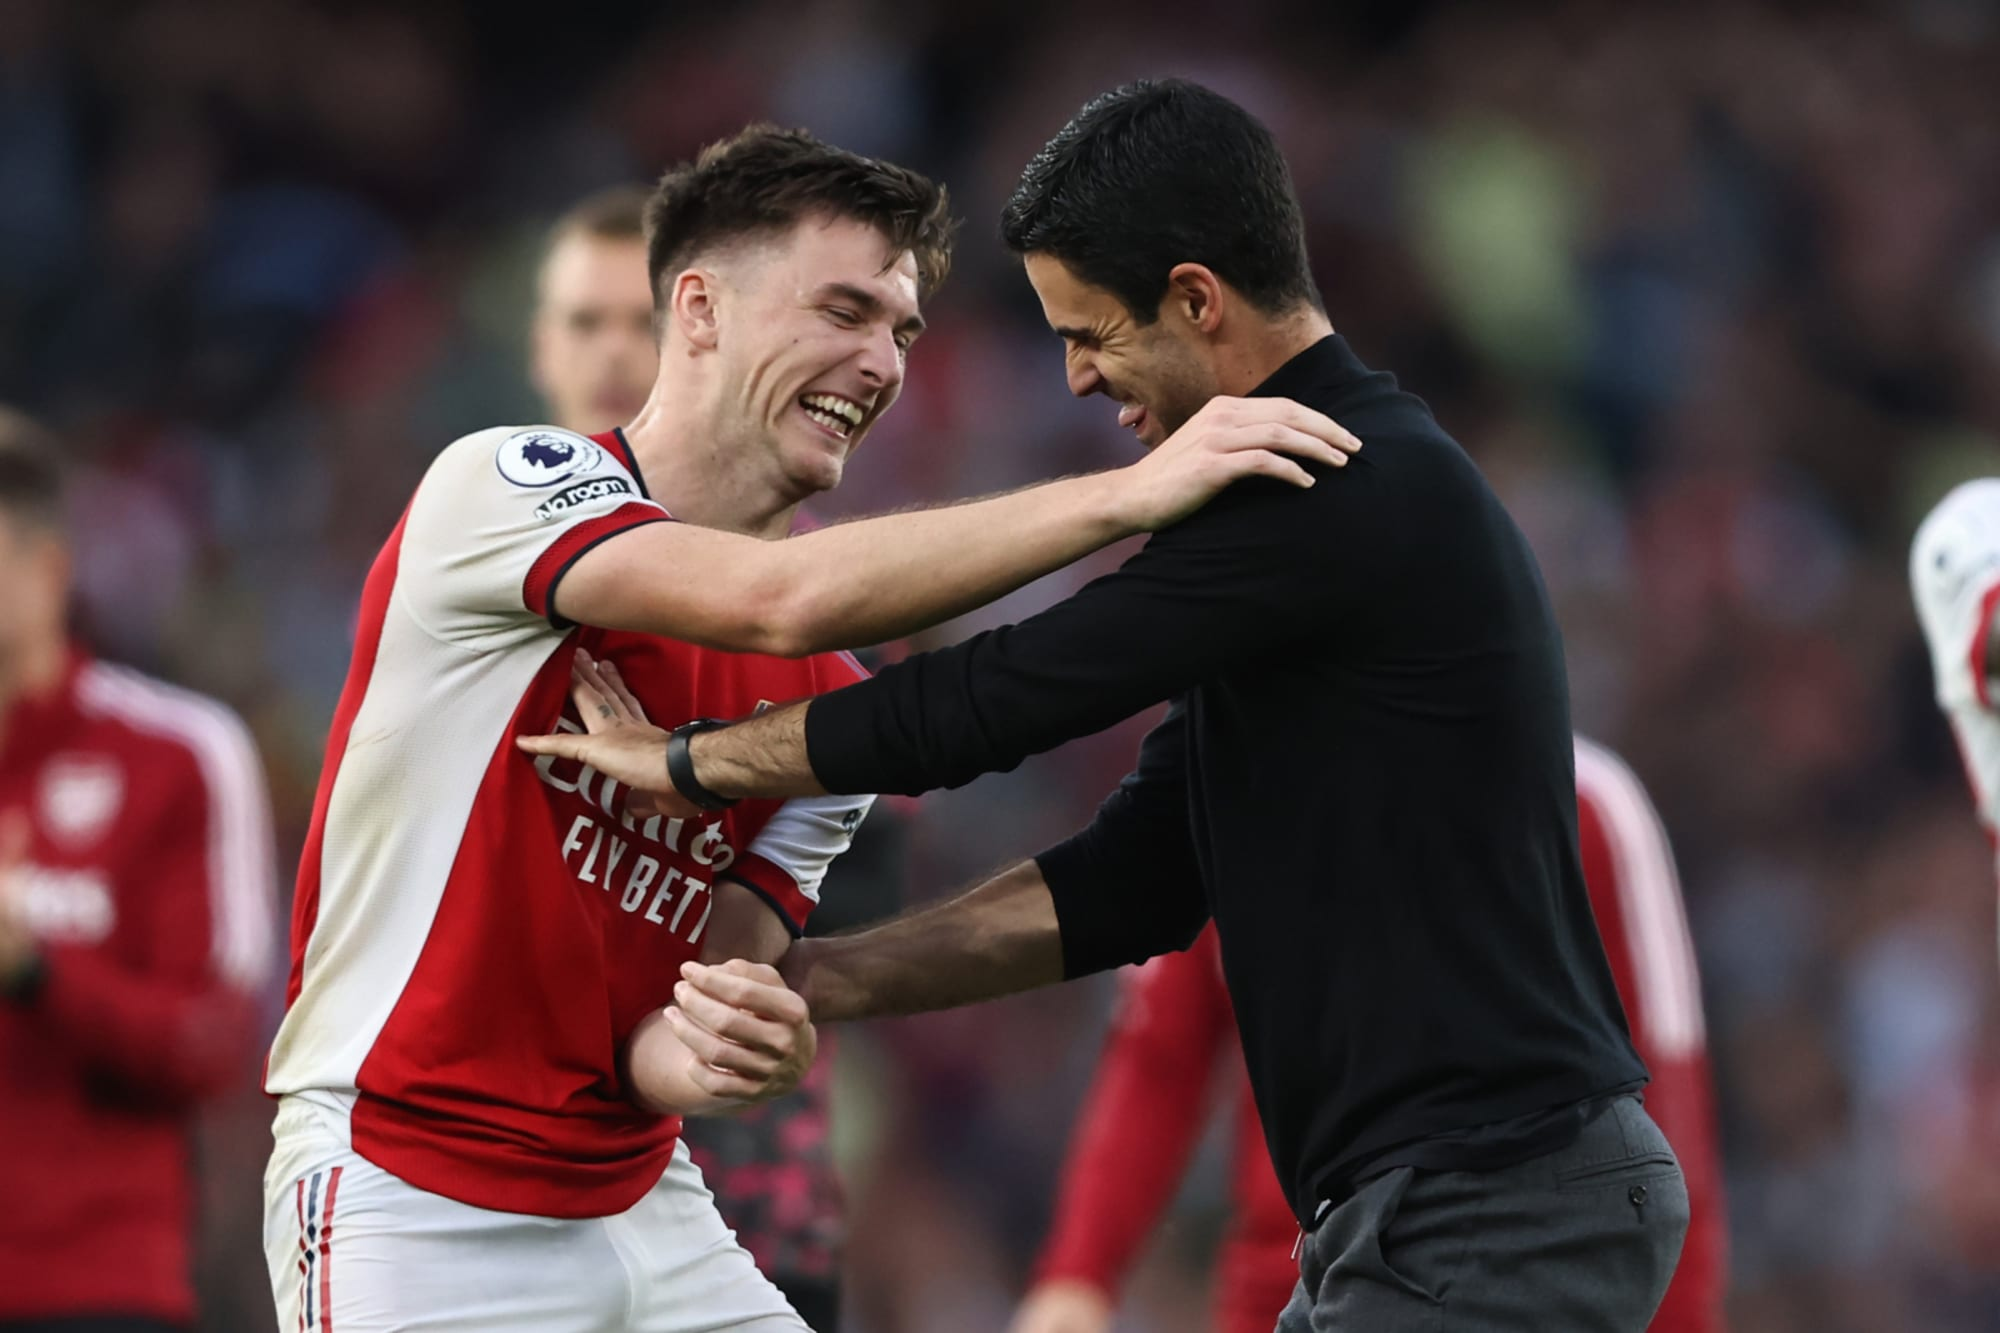 Arsenal: The 2 candidates for captain after Aubameyang